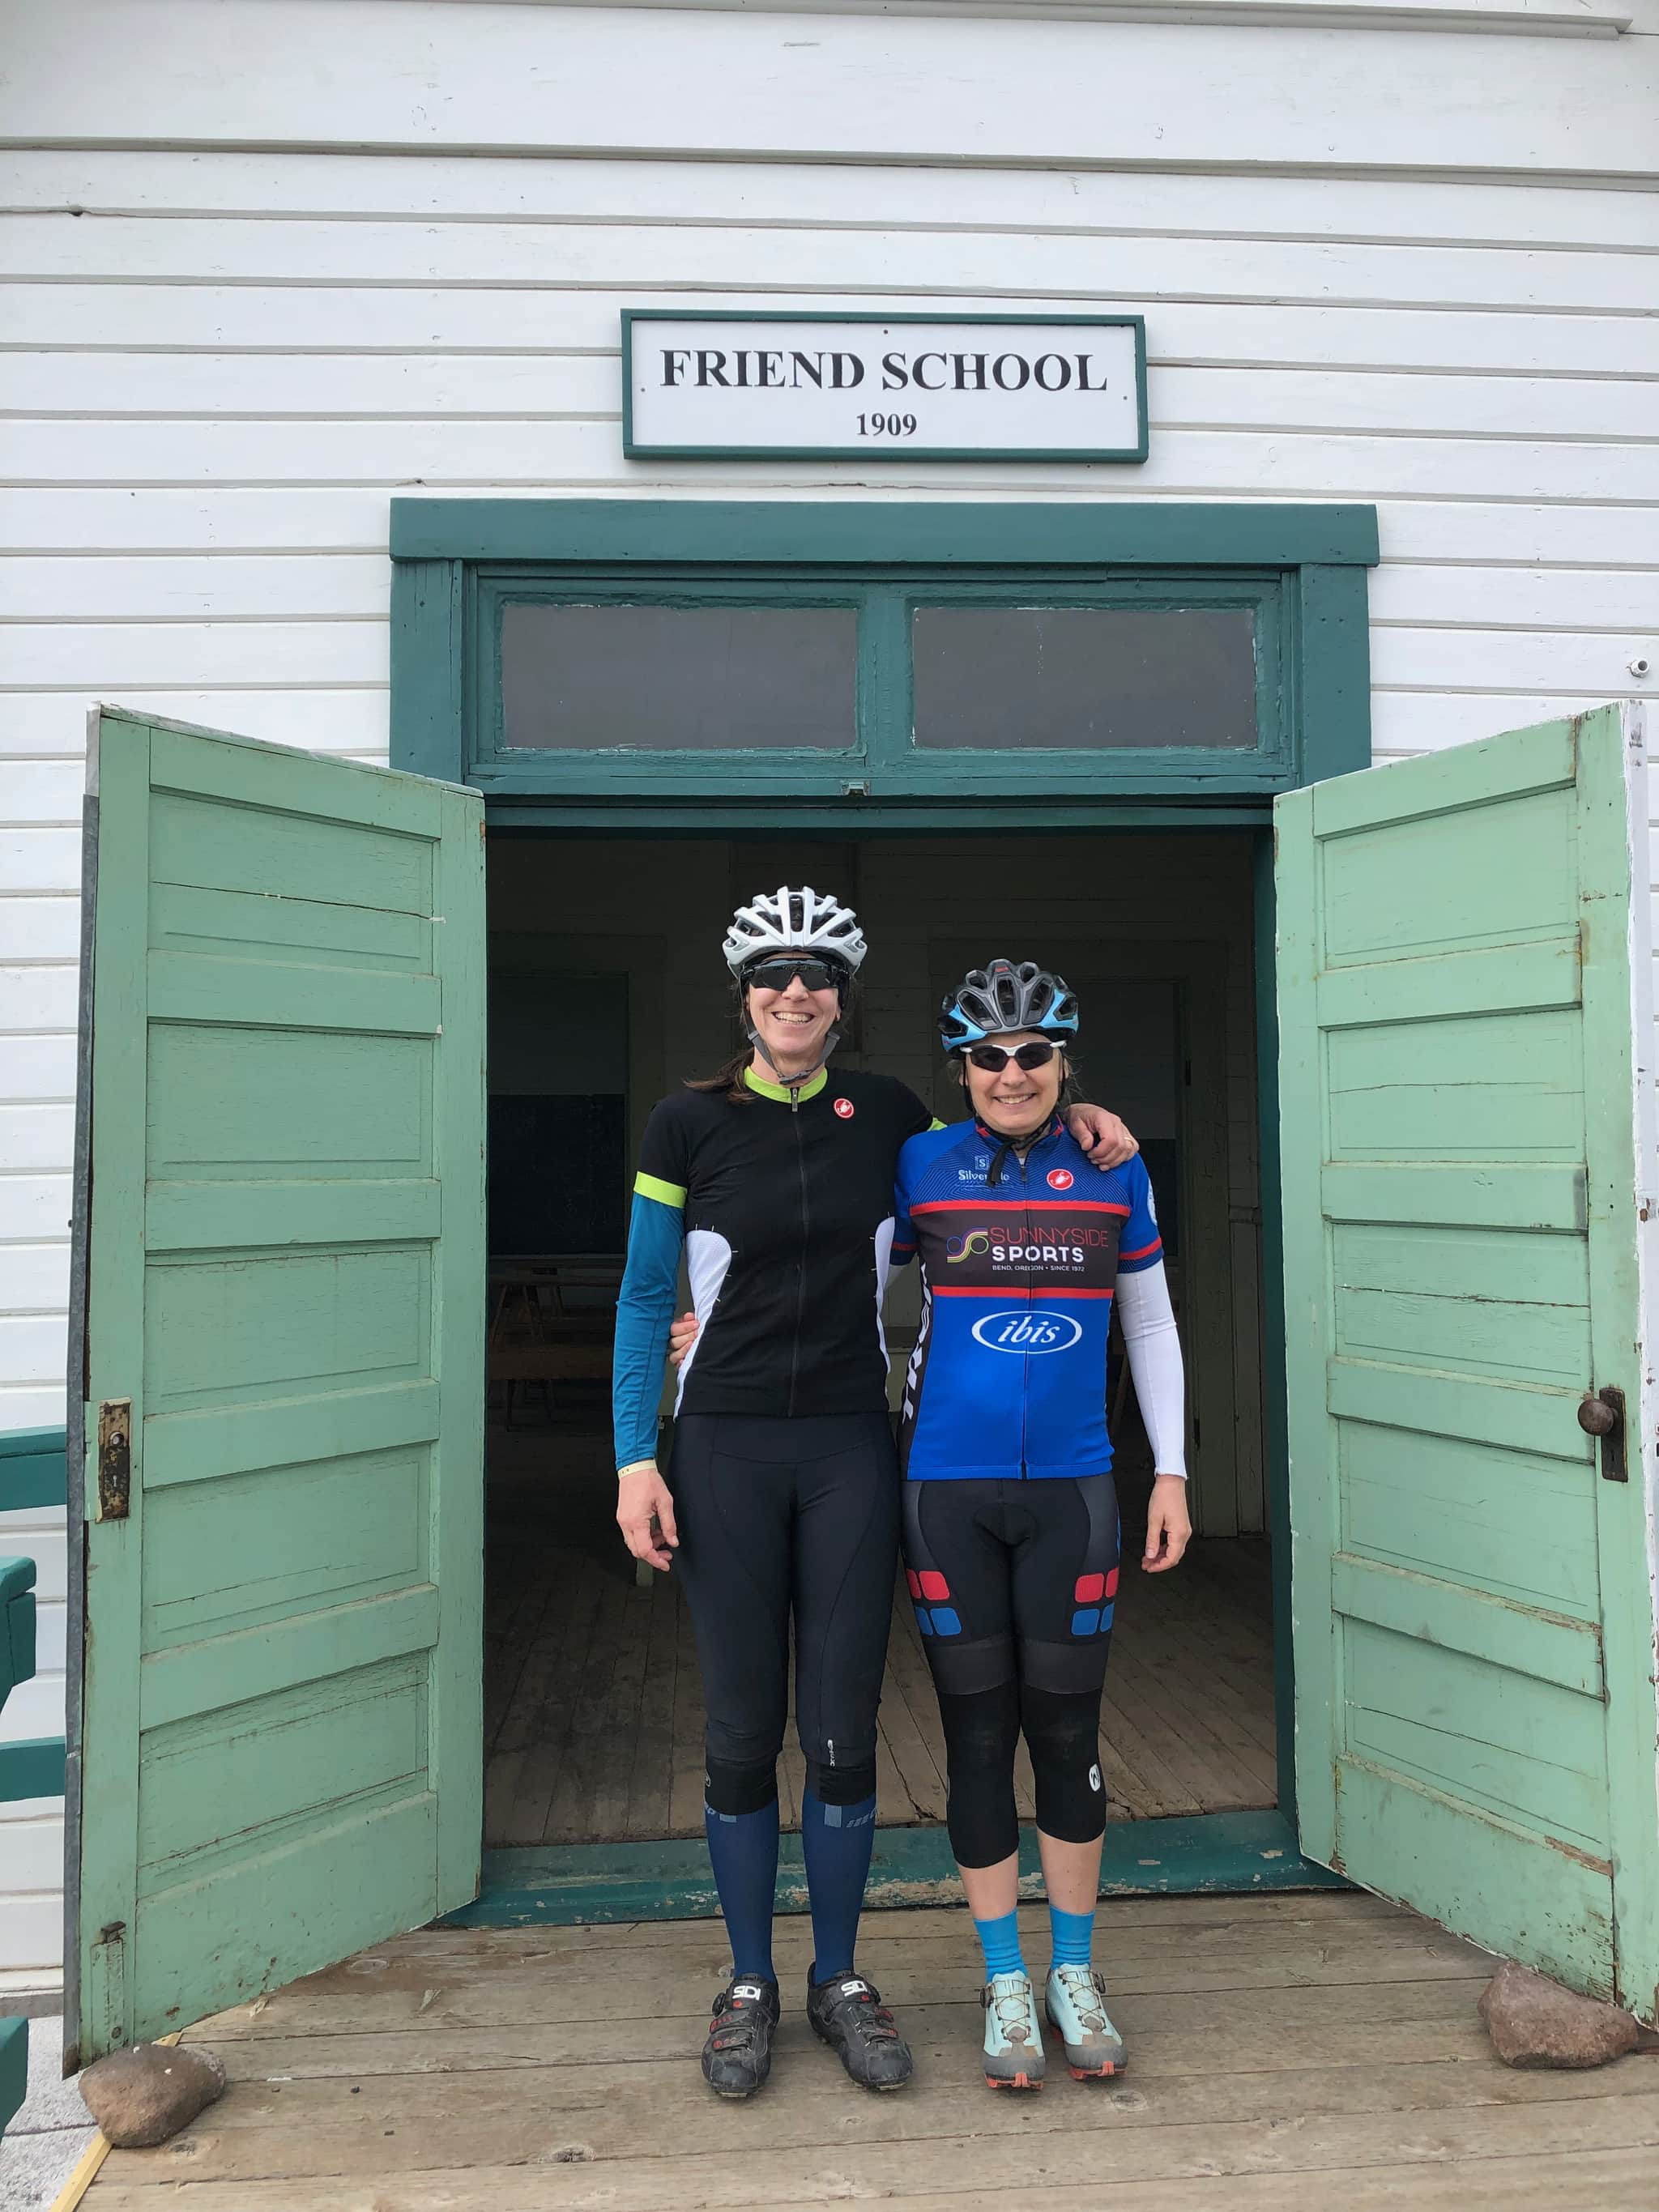 Two gravel girls standing in front of the historic Friend schoolhouse.